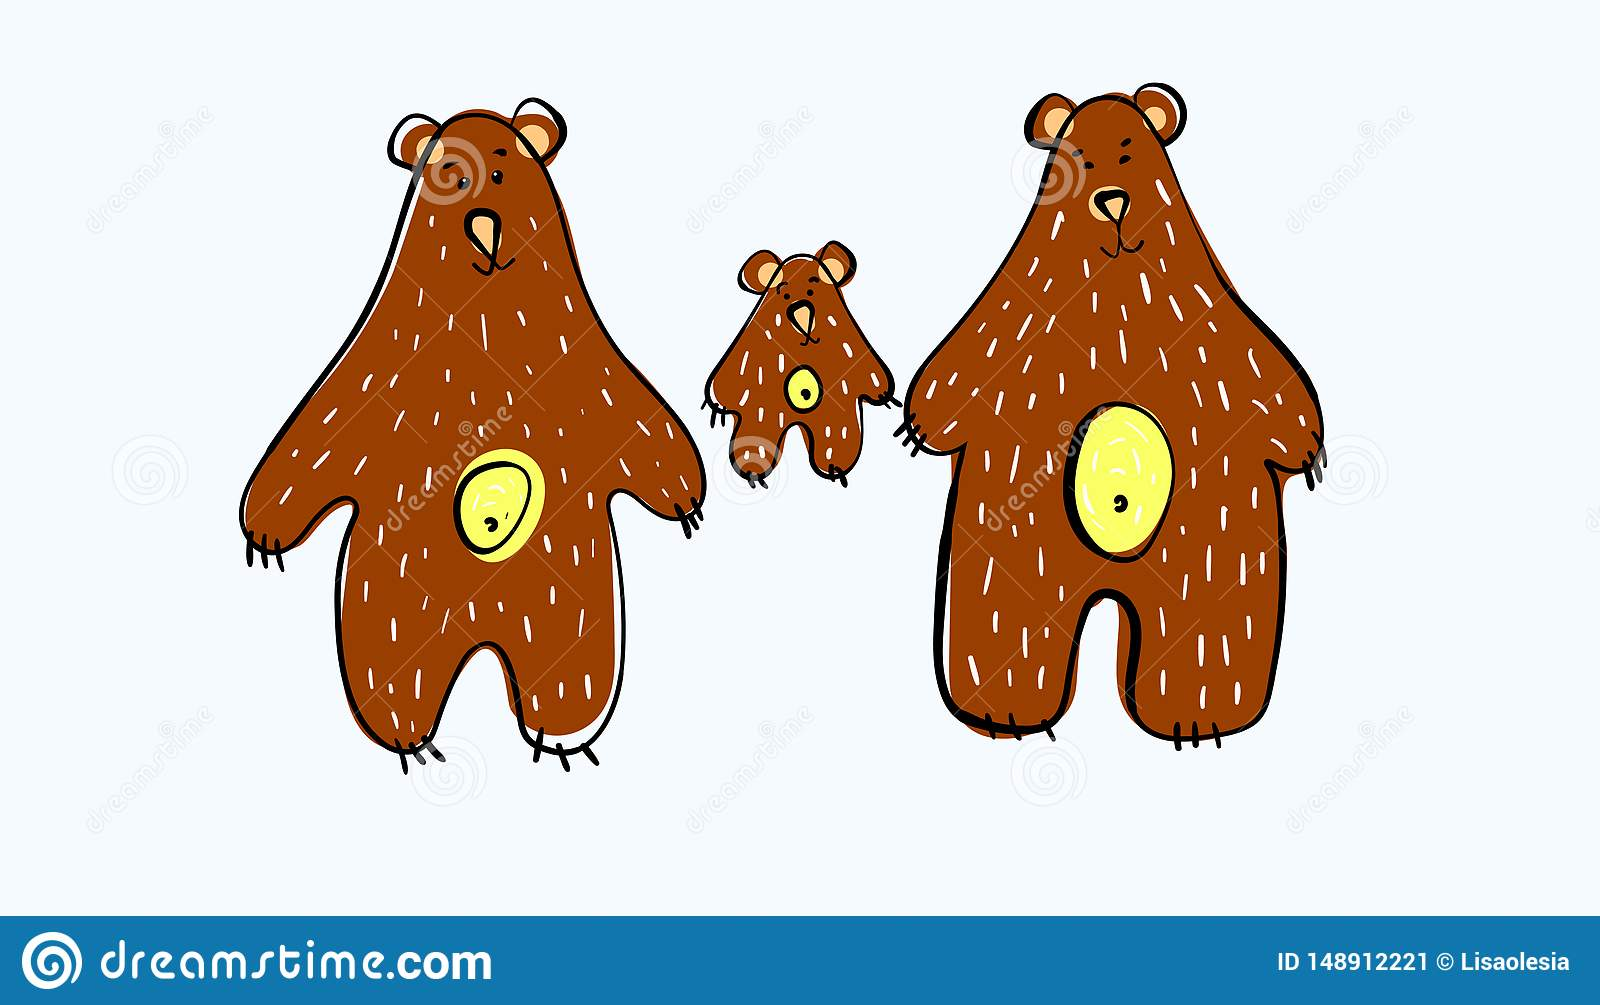 Vector illustration. Bear family. Three brown bears. Daddy bear Mother bear and little bear. For creating clothing design